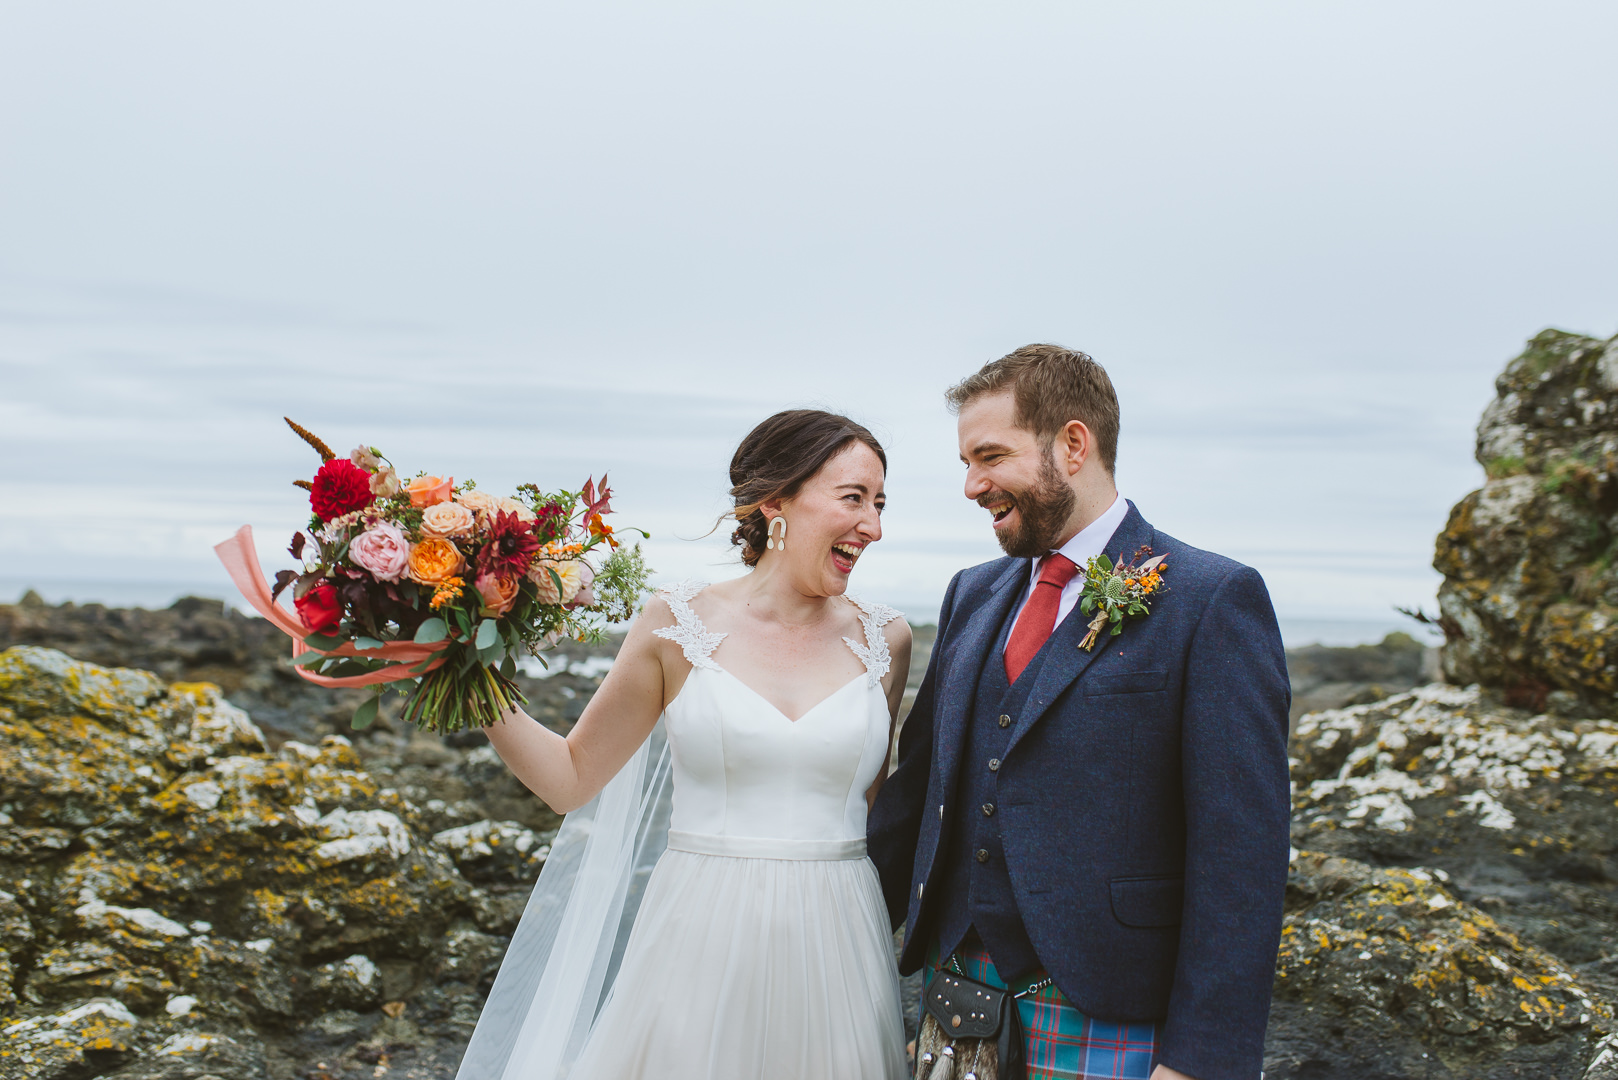 Kinkell Byre - From my best wedding photos from 2019